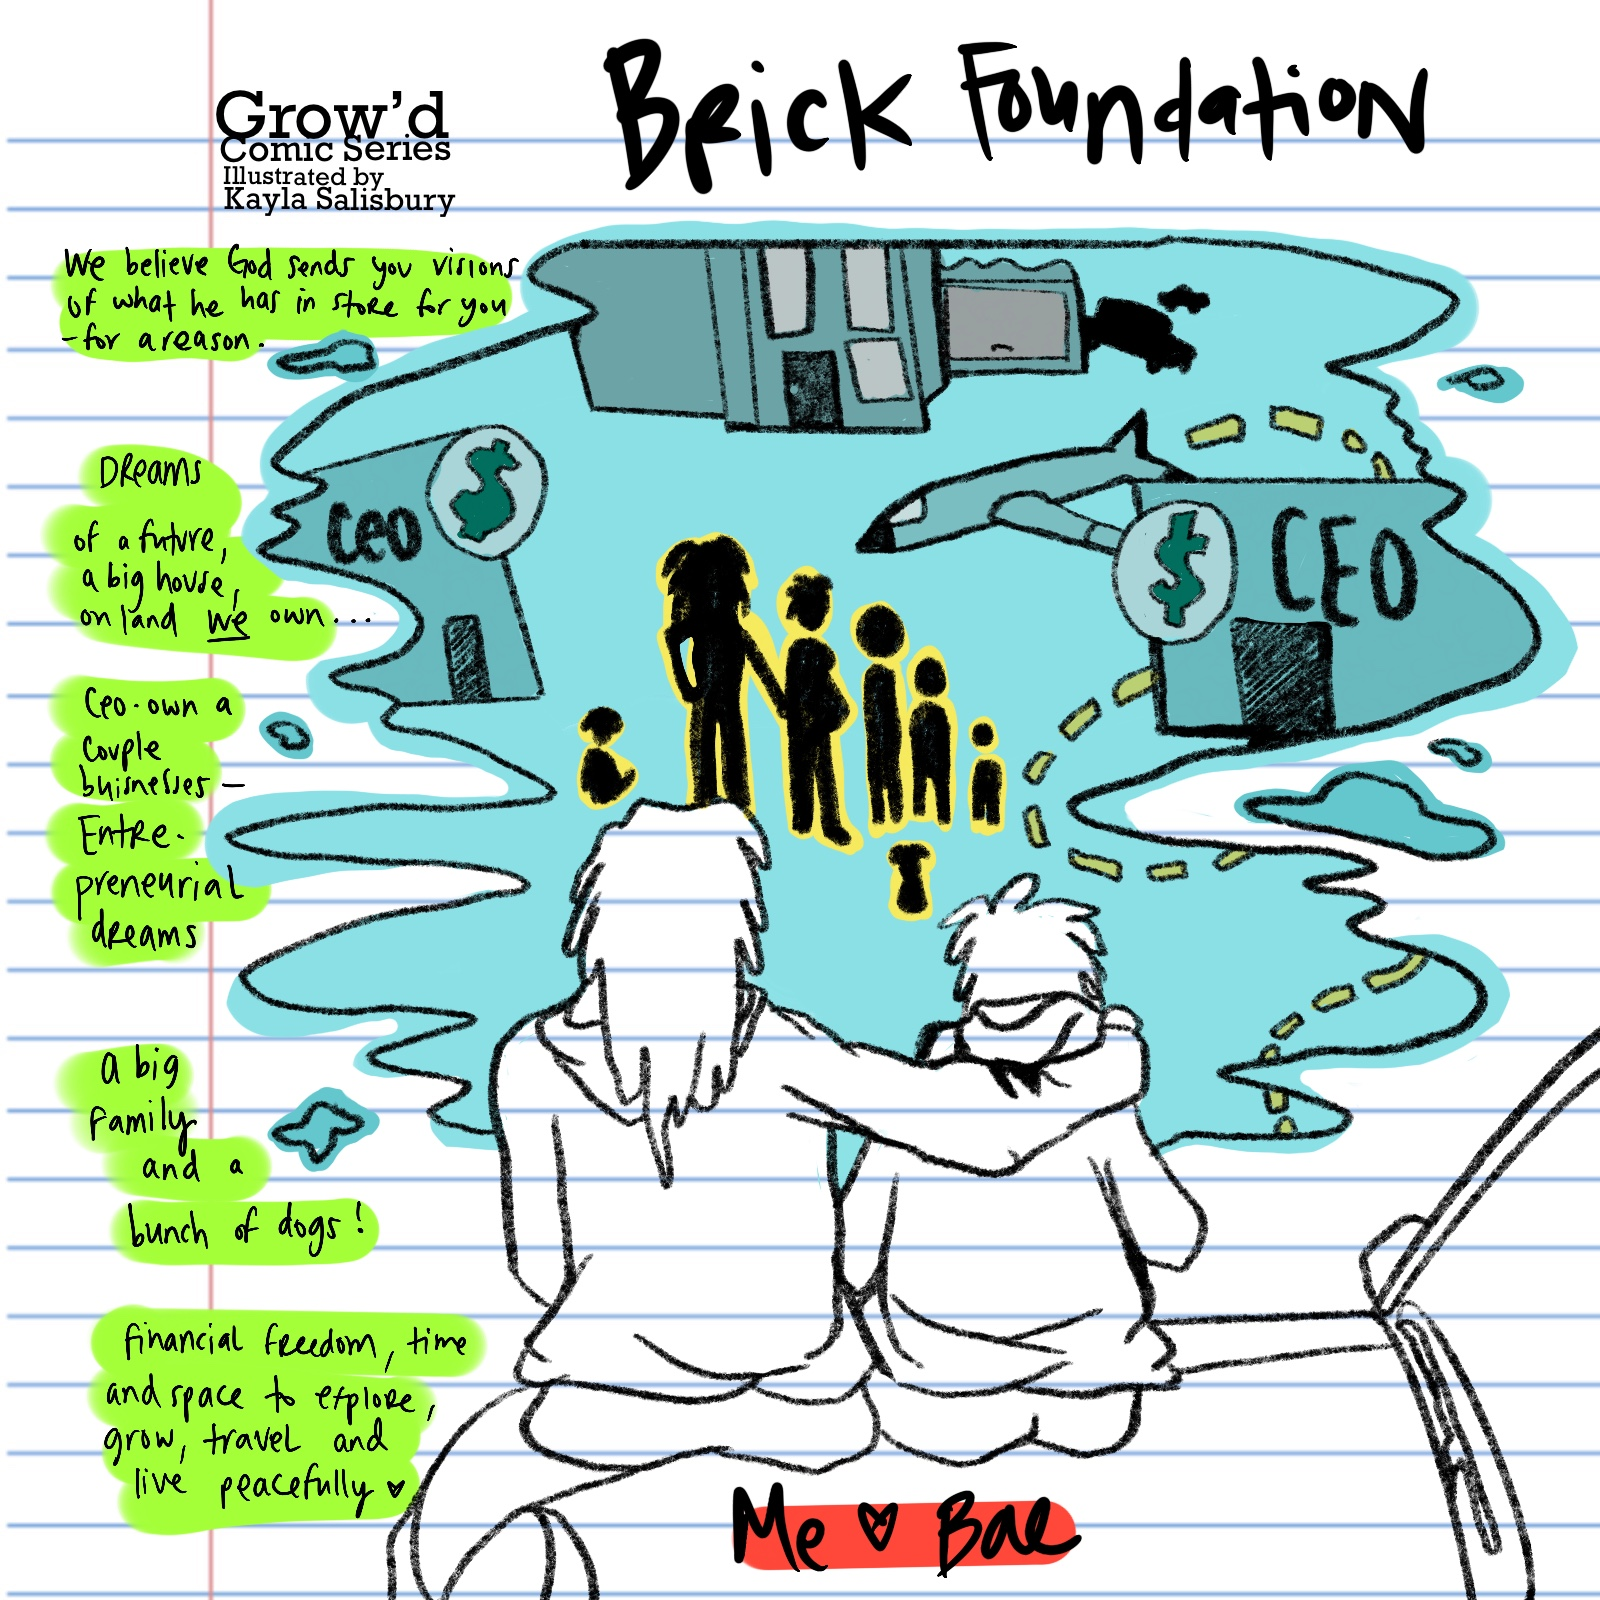 brick foundation.jpg